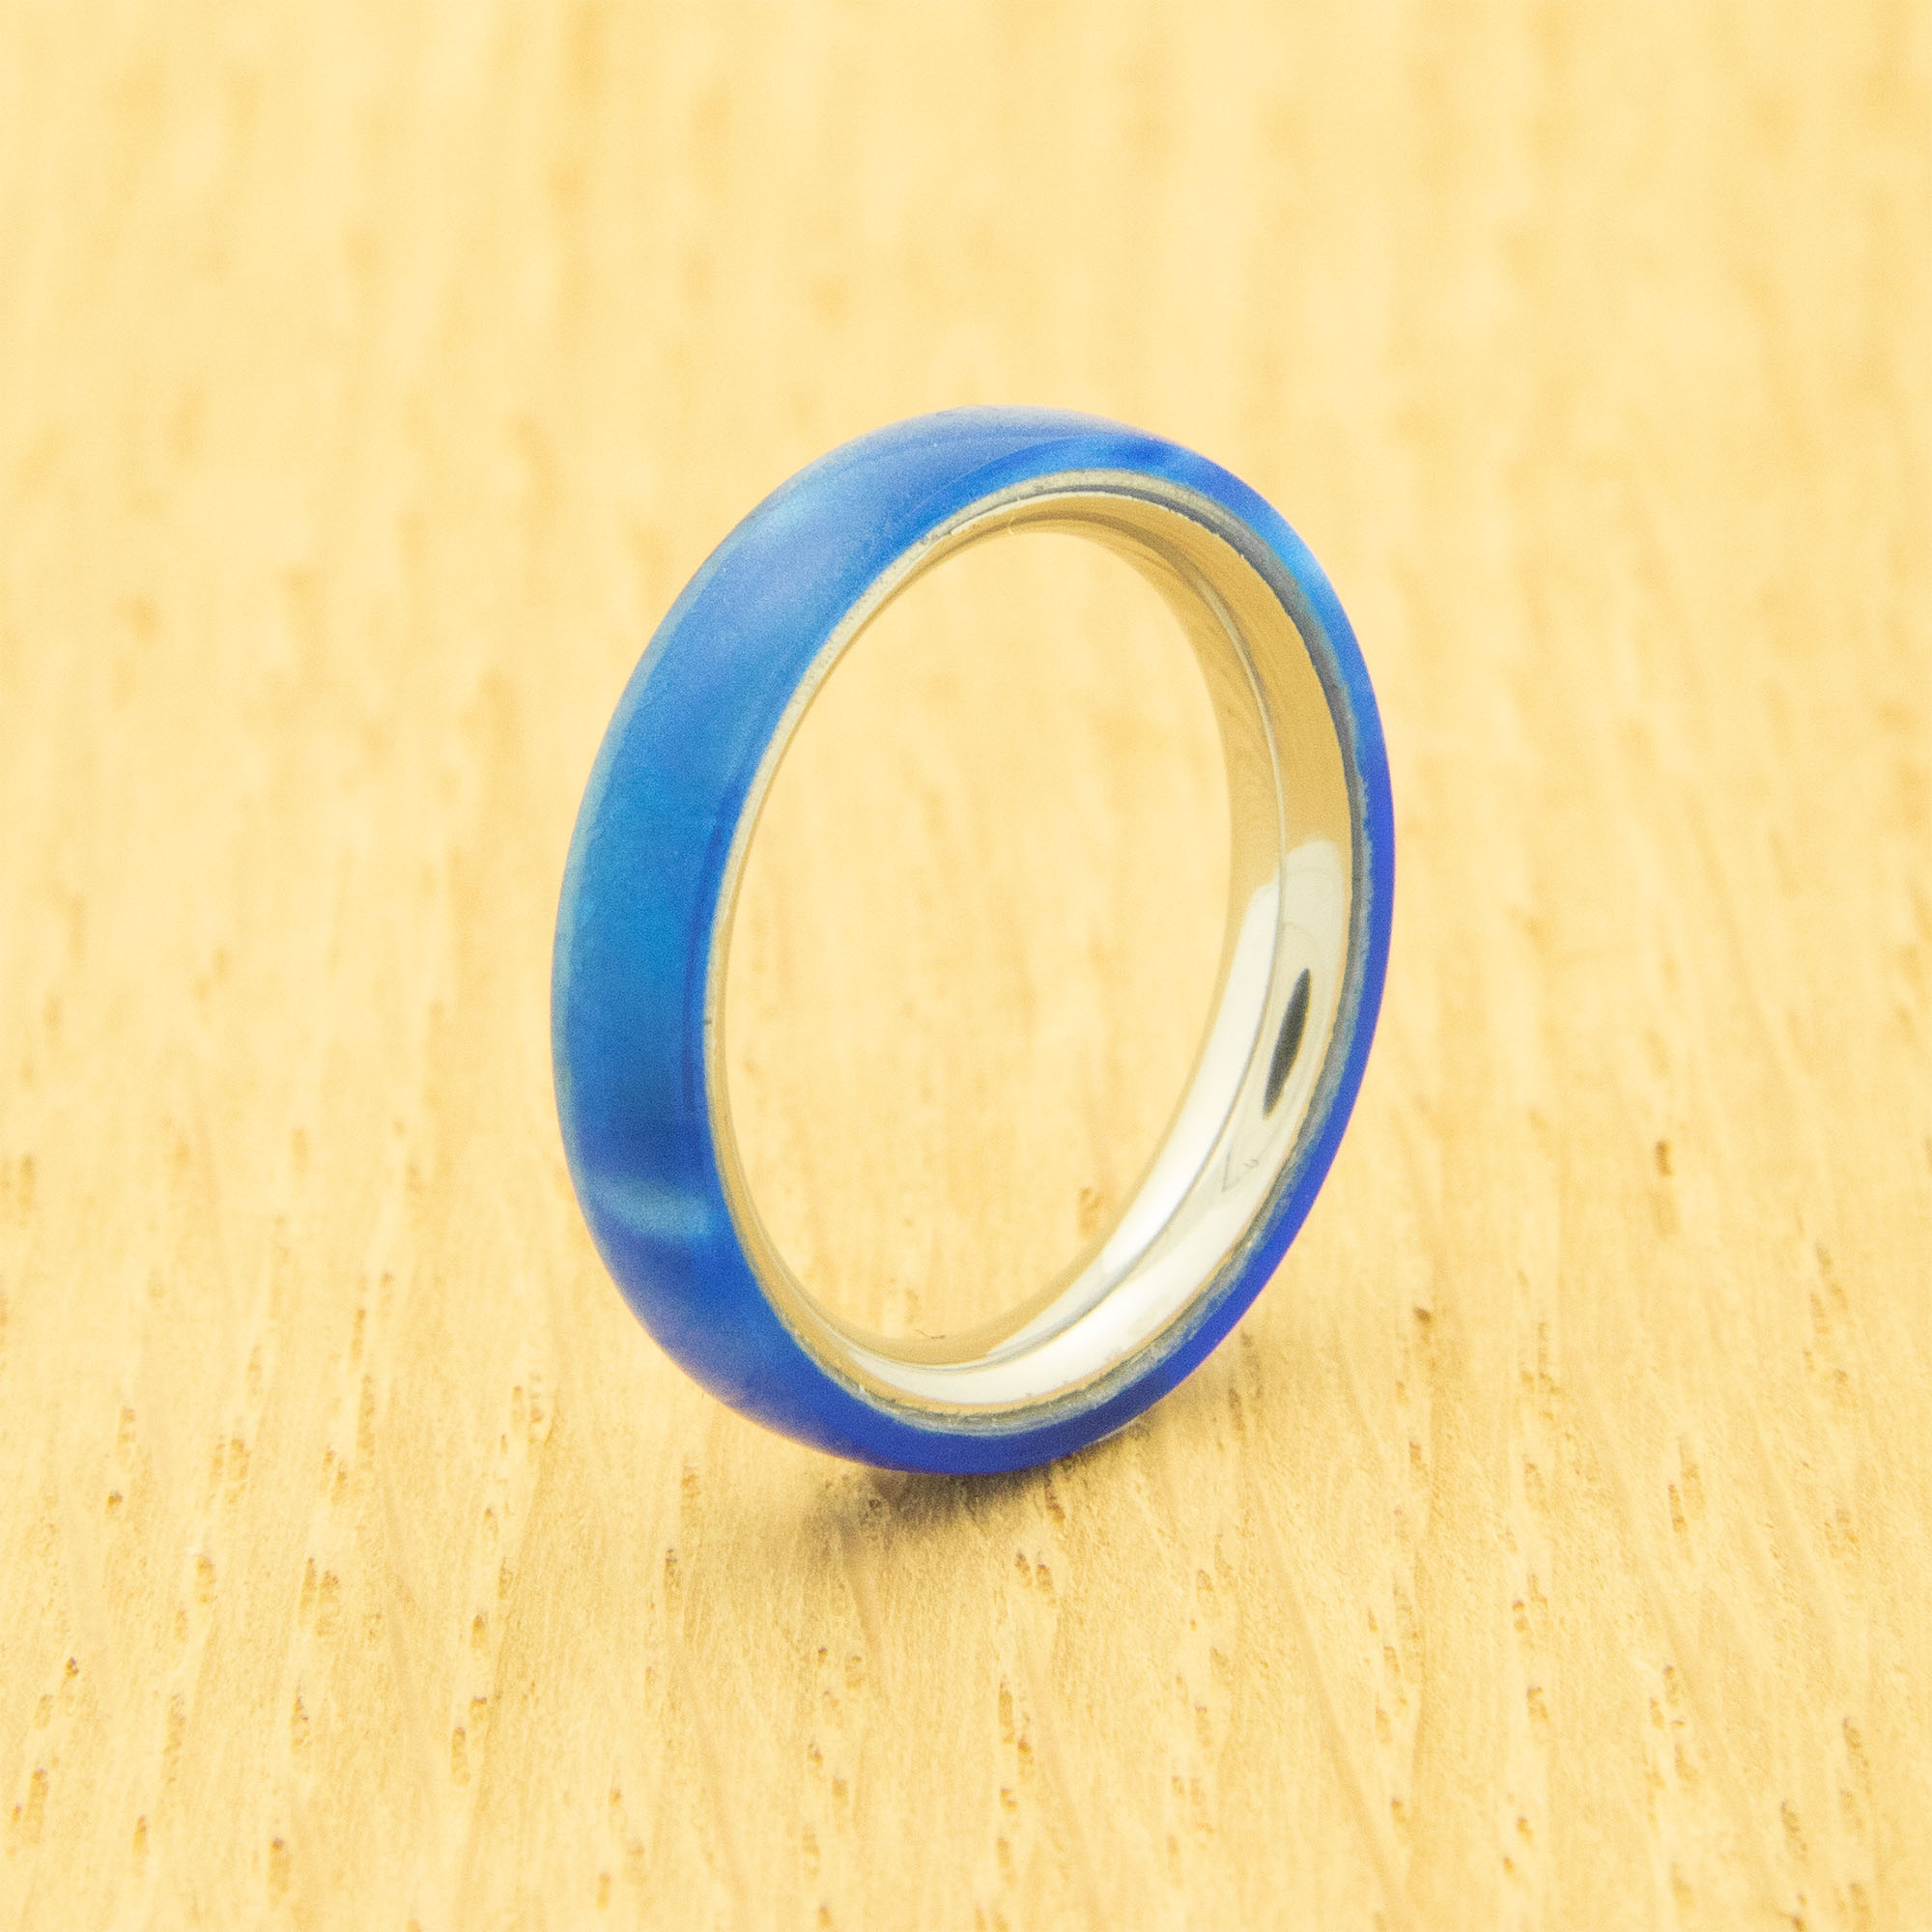 Shown here with Lifestyle ring core 3 mm